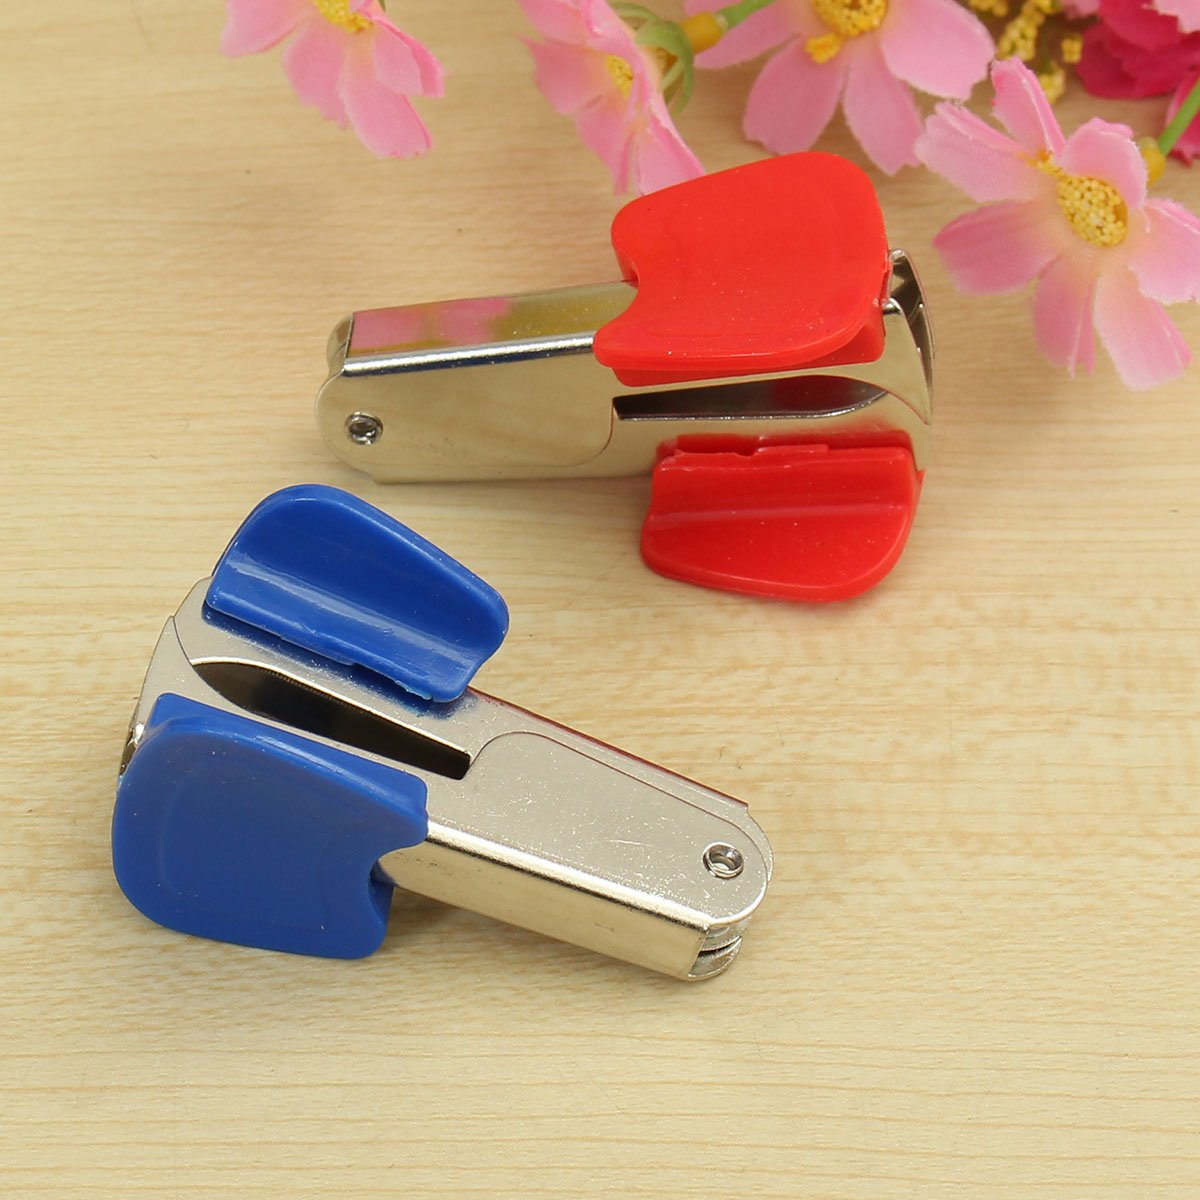 Plastic & Metal Mini Stapler Accessories Staple Remover for Home Office School by Thailand (Image #5)